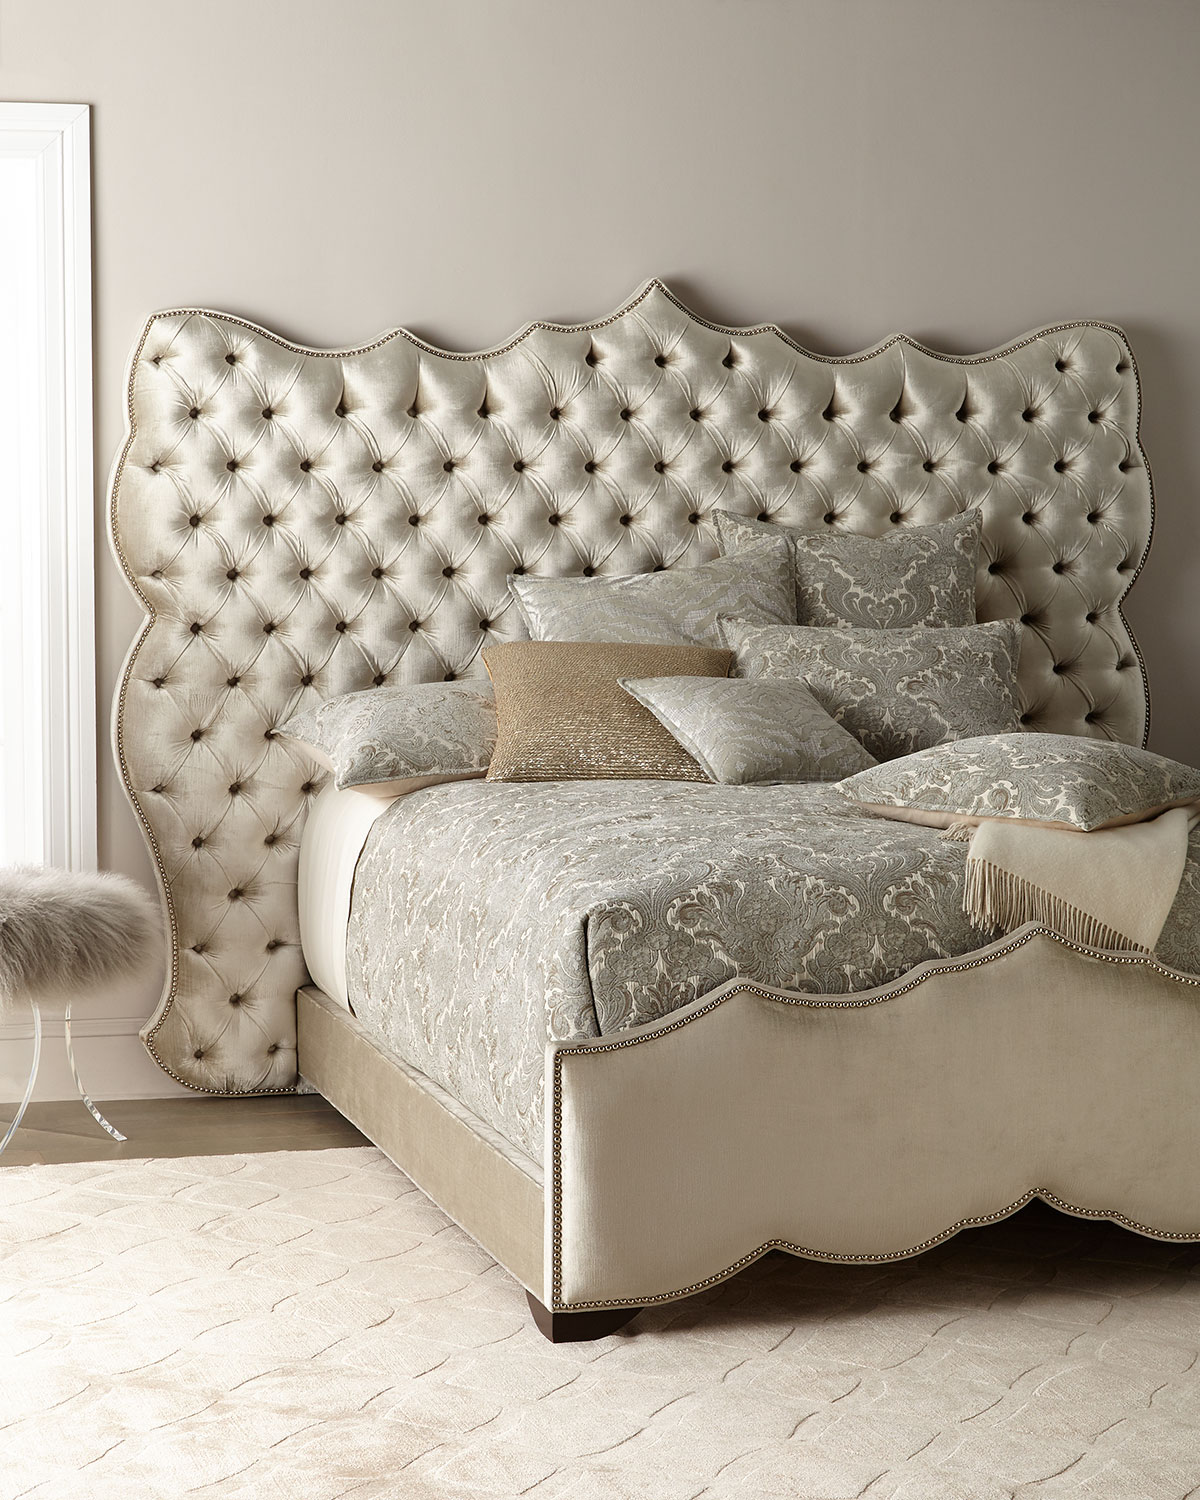 Haute House Samara Tufted King Bed